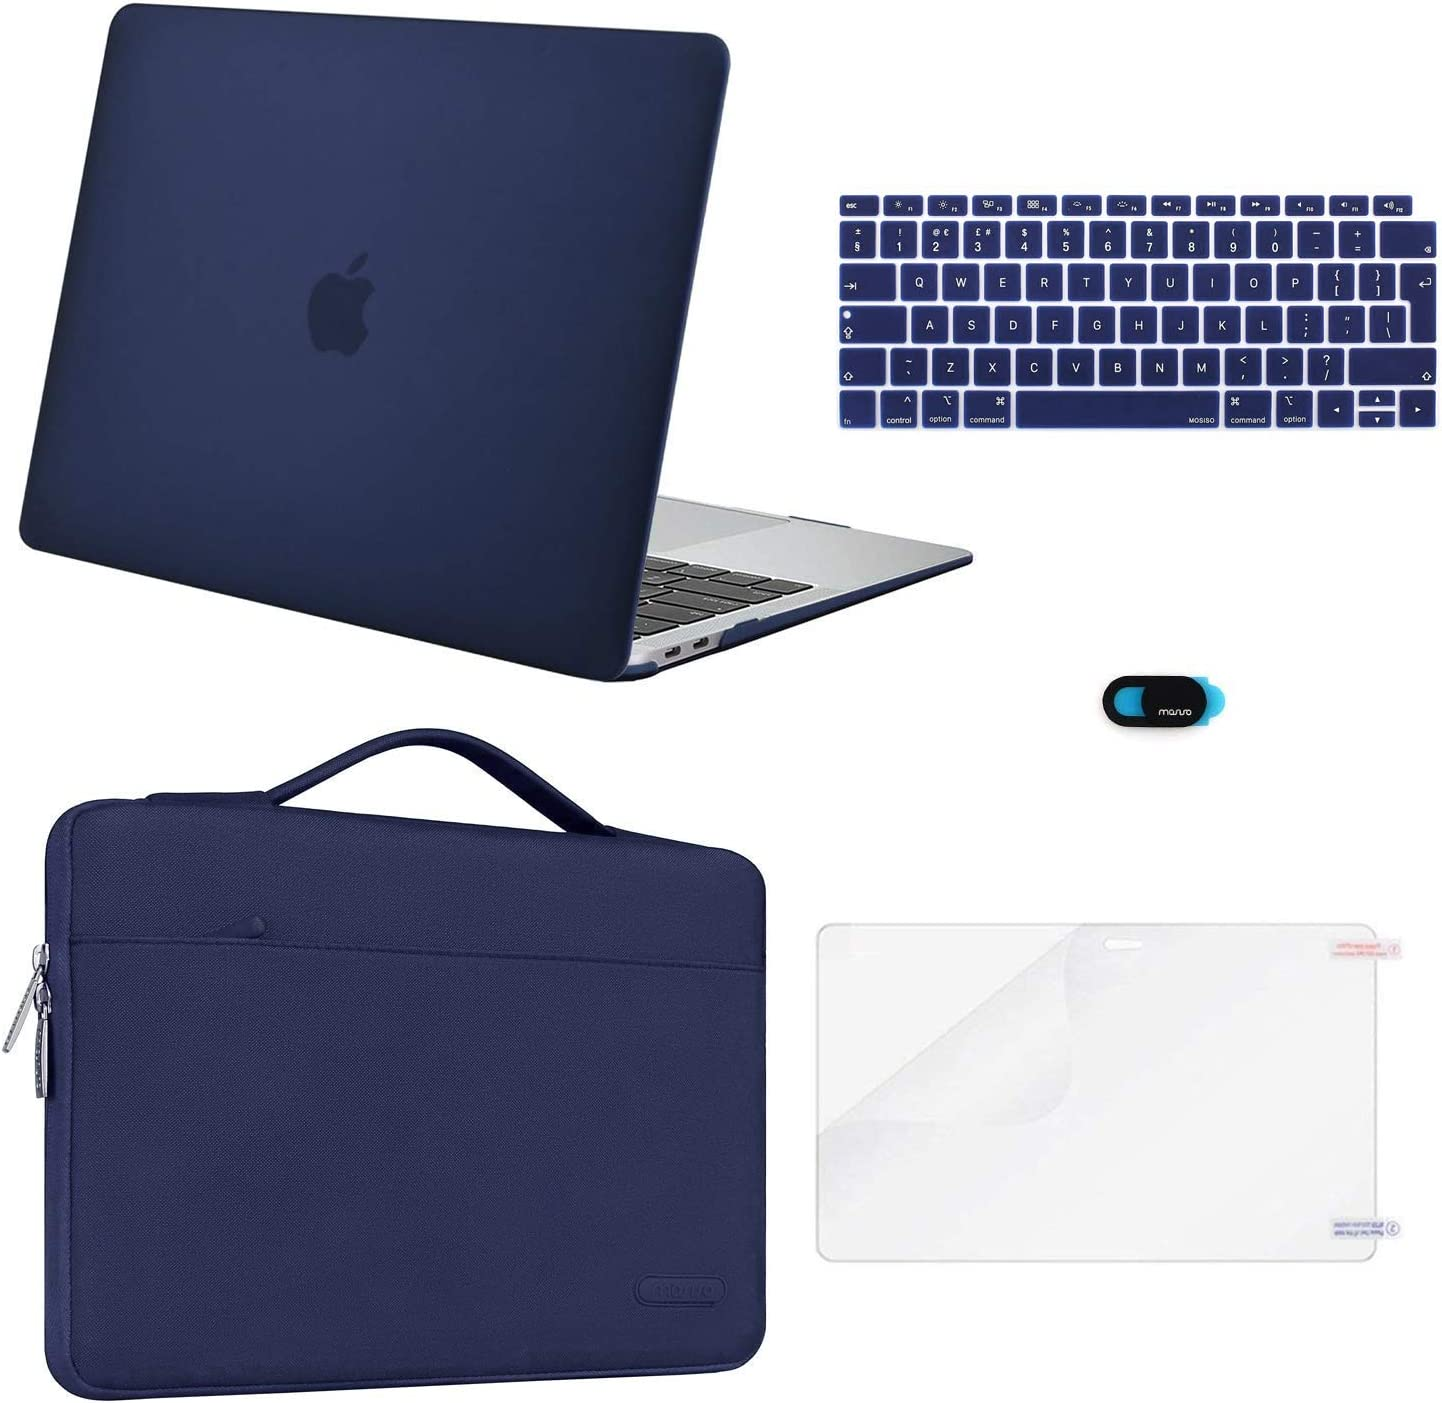 Plastik H/ülle /& Aktentasche /& Tastaturschutz /& Displayschutz /& Webcam Cover Kompatibel mit Mac Air 13 MOSISO H/ülle Kompatibel mit MacBook Air 13 2019 2018 Freisetzung A1932 mit Retina Space Grau